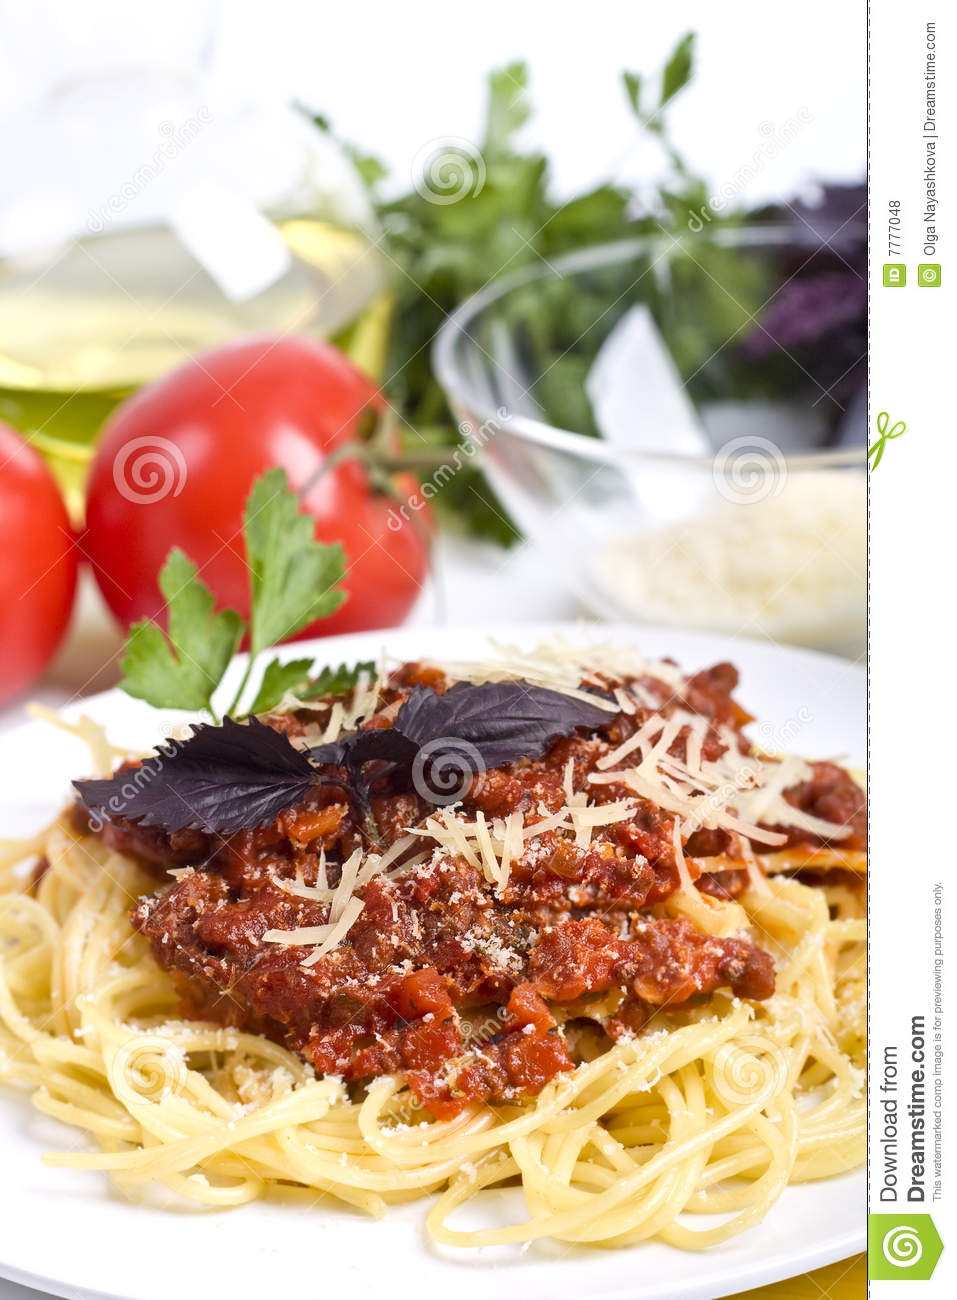 Spaghetti bolognese servwd on a white plate with basil and grated